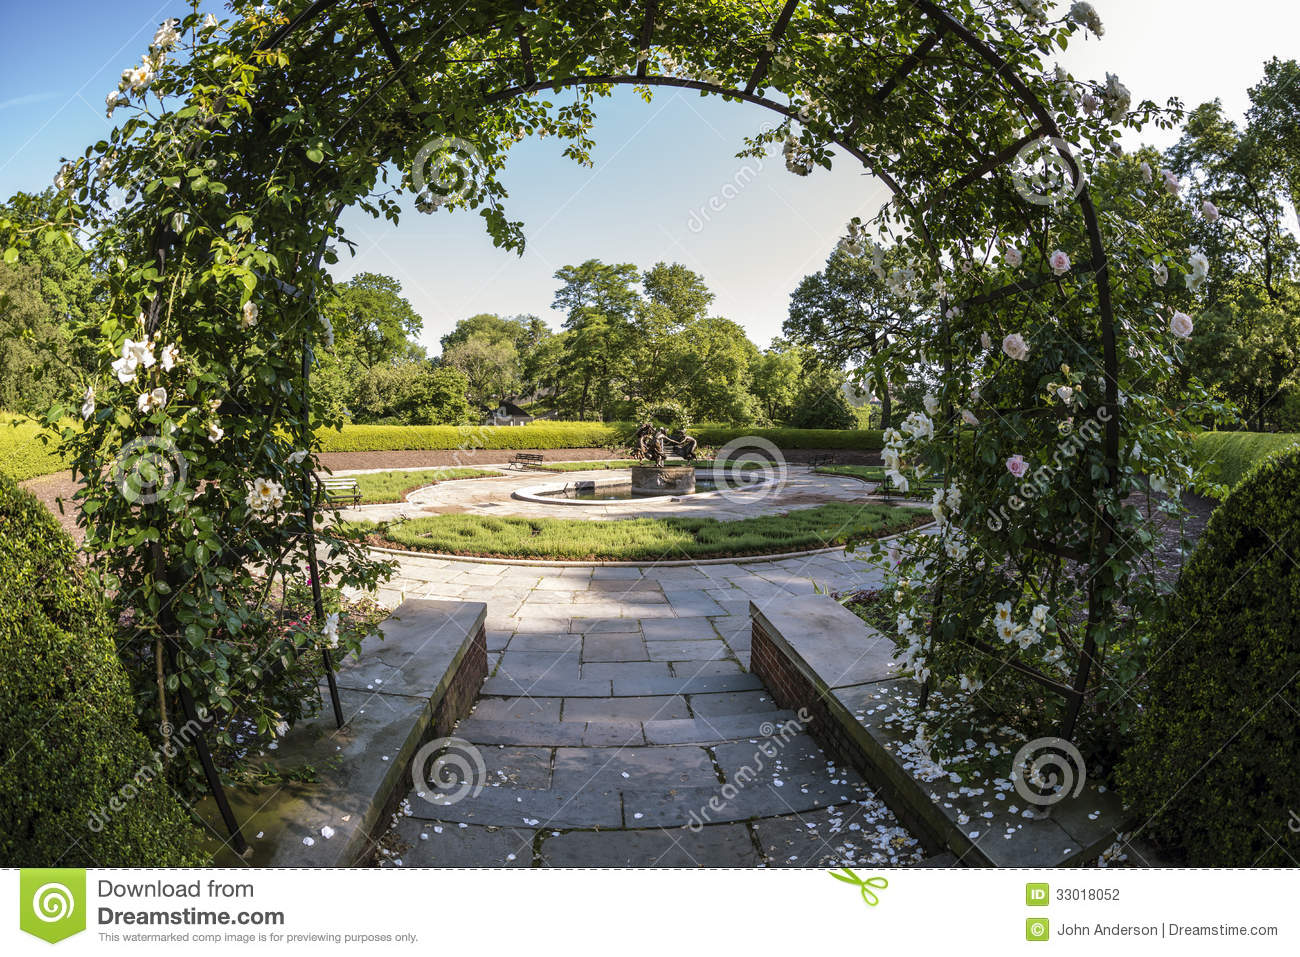 download central park new york city the conservatory garden stock photo image of york - Central Park Conservatory Garden